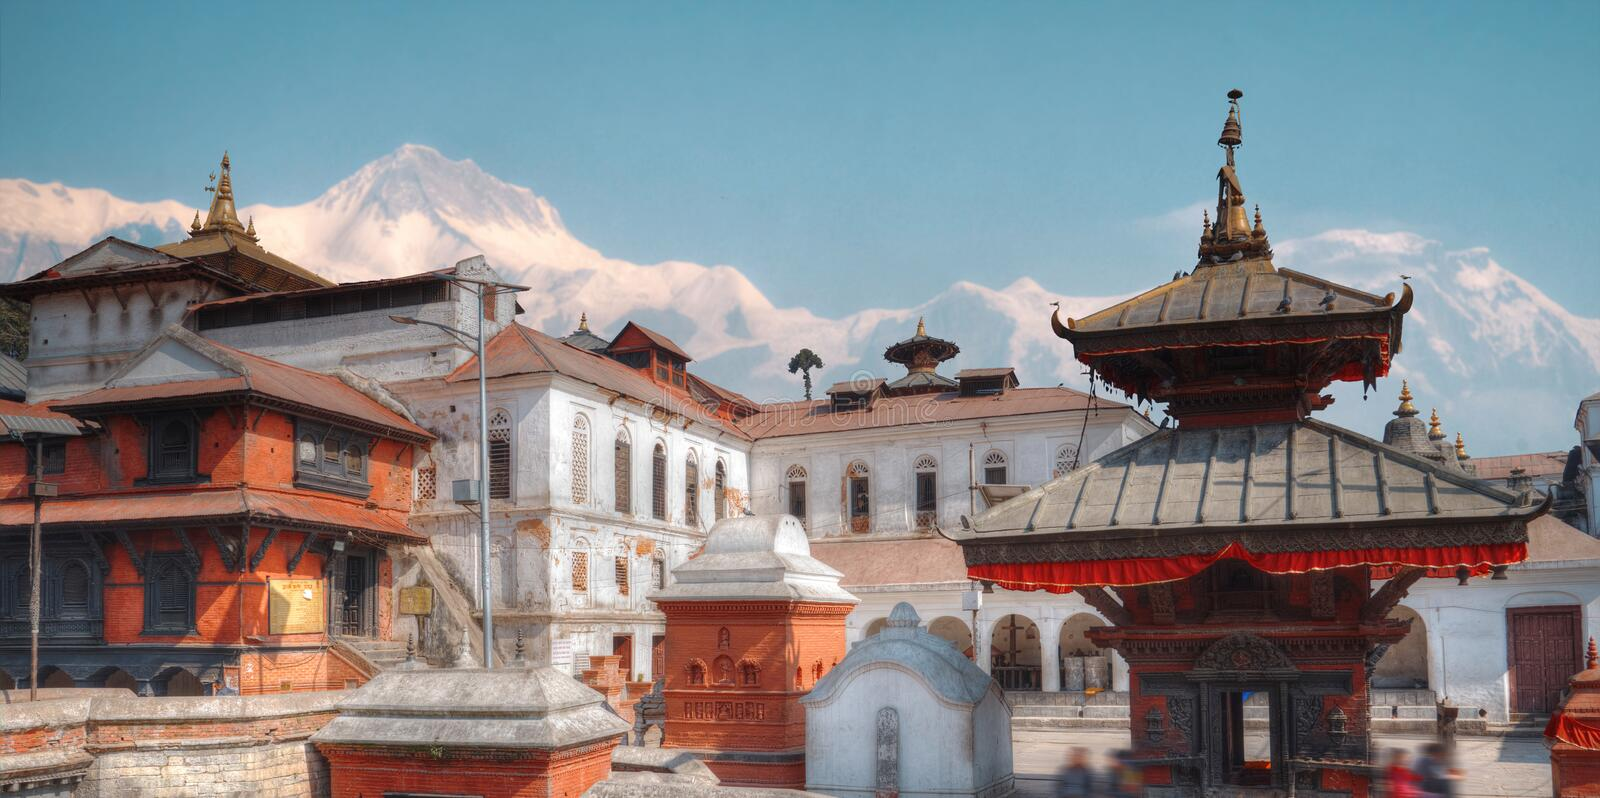 Pashupatinath Temple. Freely walk monkey. Votive temples and shrines in a row at Pashupatinath Temple, Kathmandu, Nepal royalty free stock photo